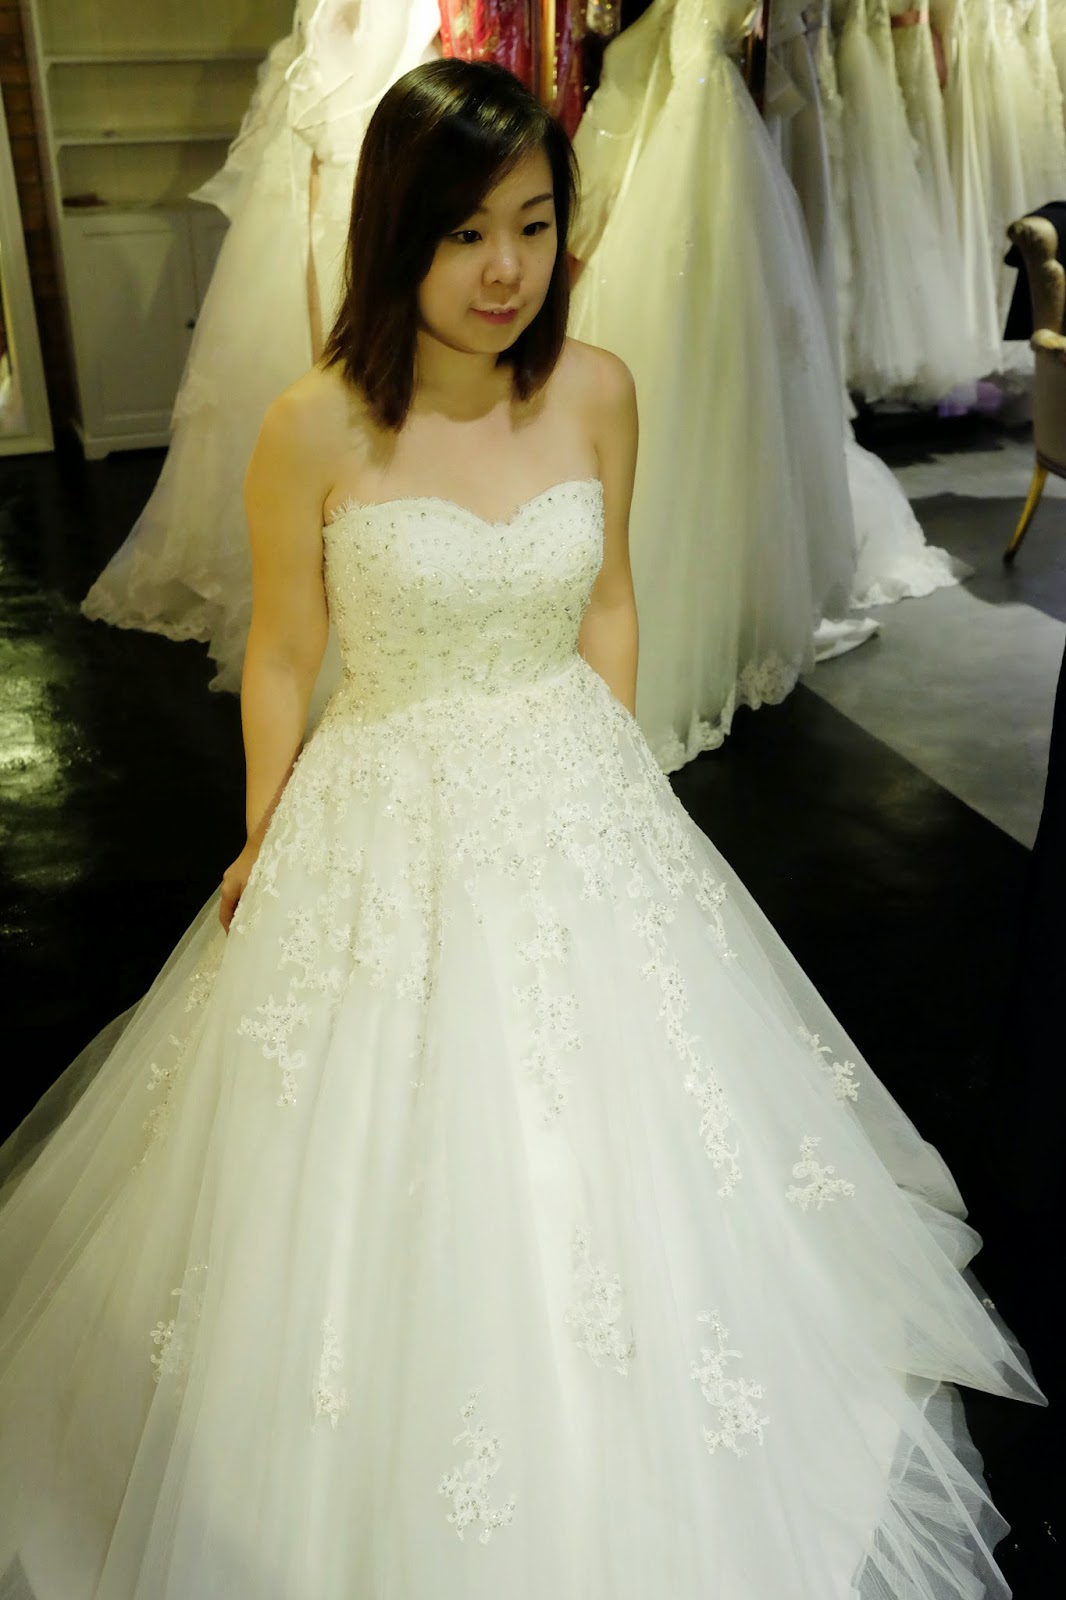 wedding blog hunting for perfect dress rental wedding dresses Price Around RM RM for rent They are flexible to let me have the dress for 1 week since I m in Singapore